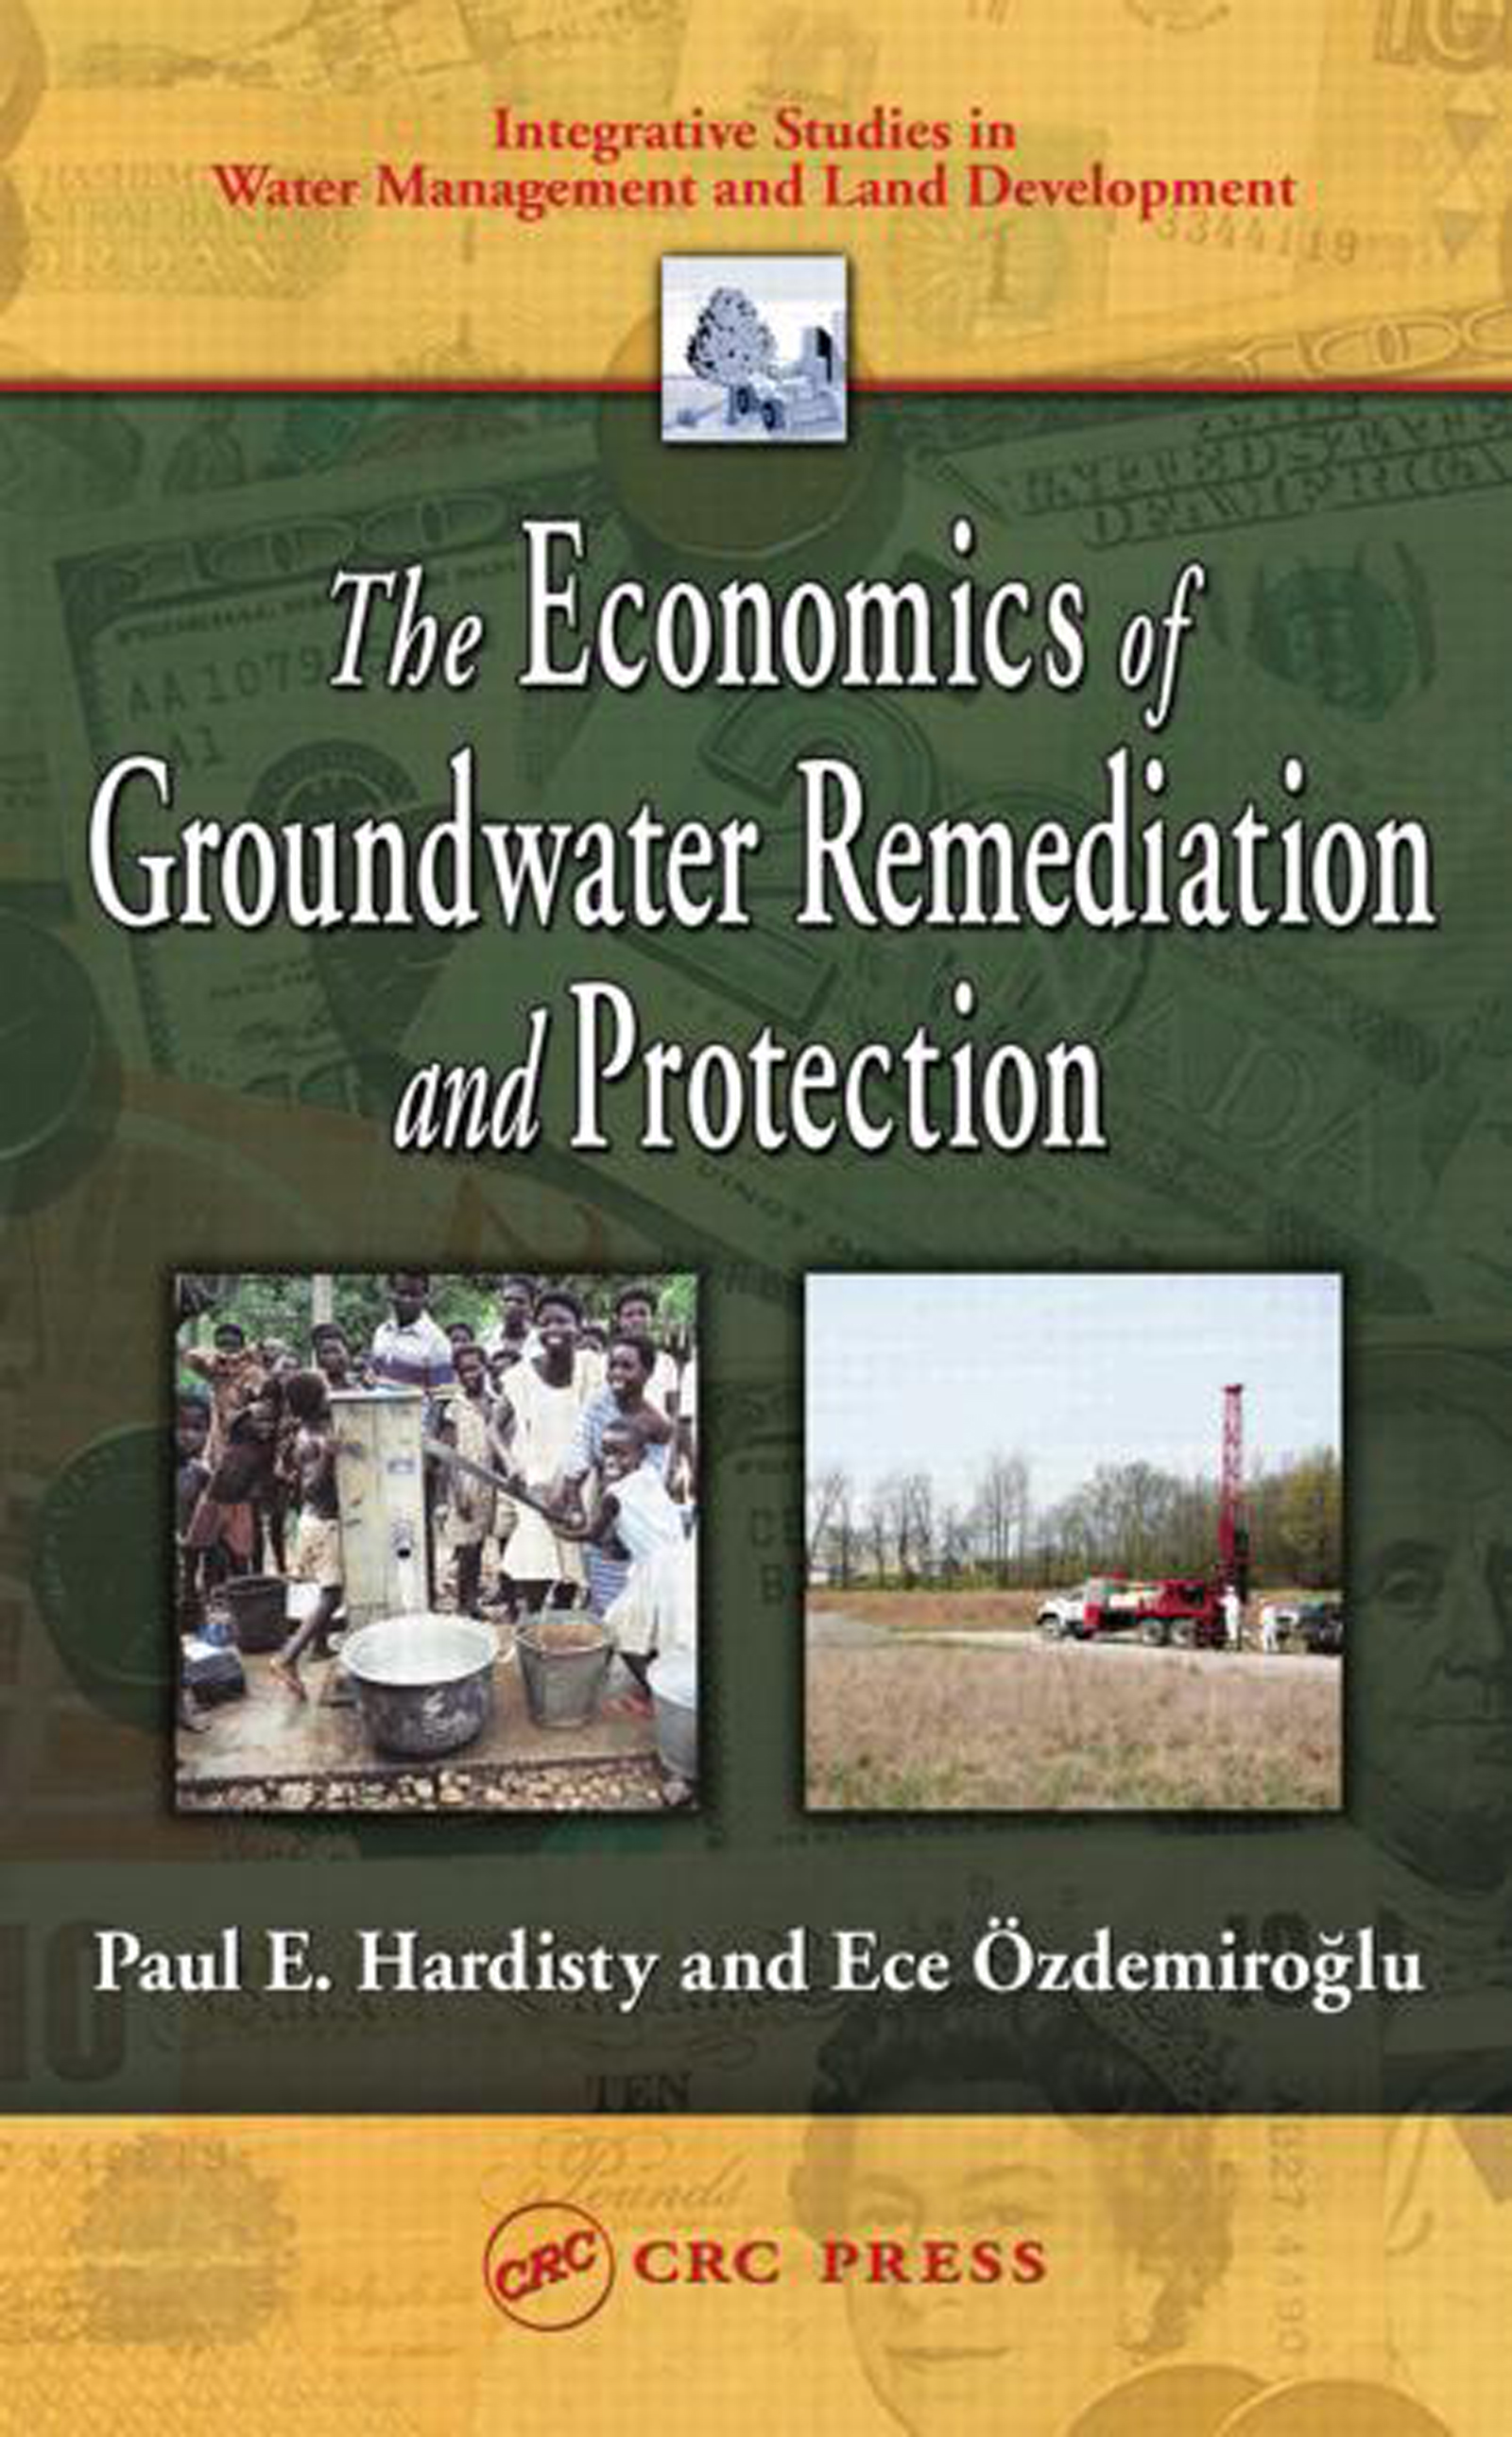 The economics of groundwater remediation and protection Ece Ozdemiroglu, Paul E. Hardisty